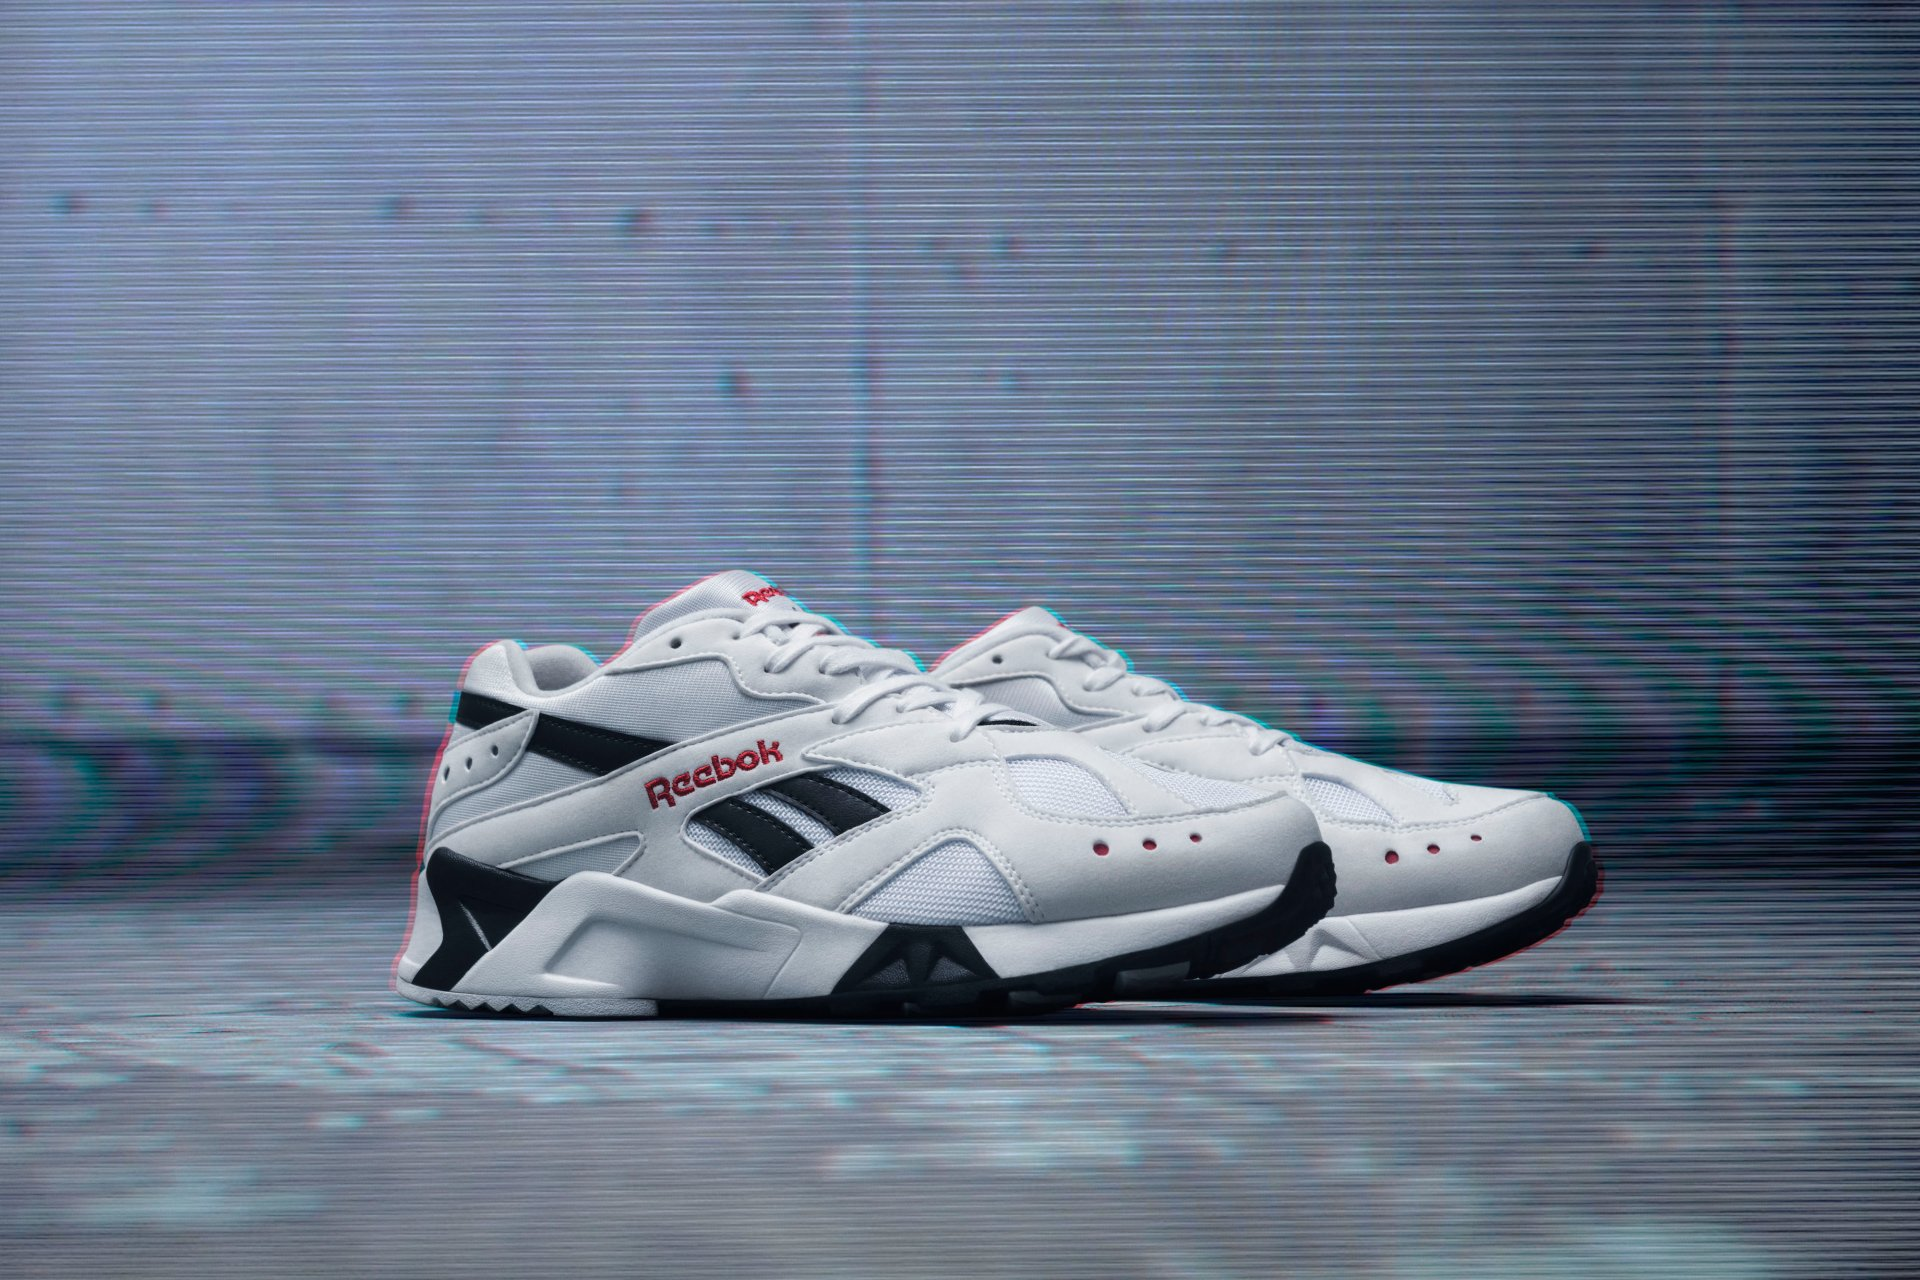 c13fb10b717 Curated image with Reebok Aztrek Curated image with Reebok Aztrek